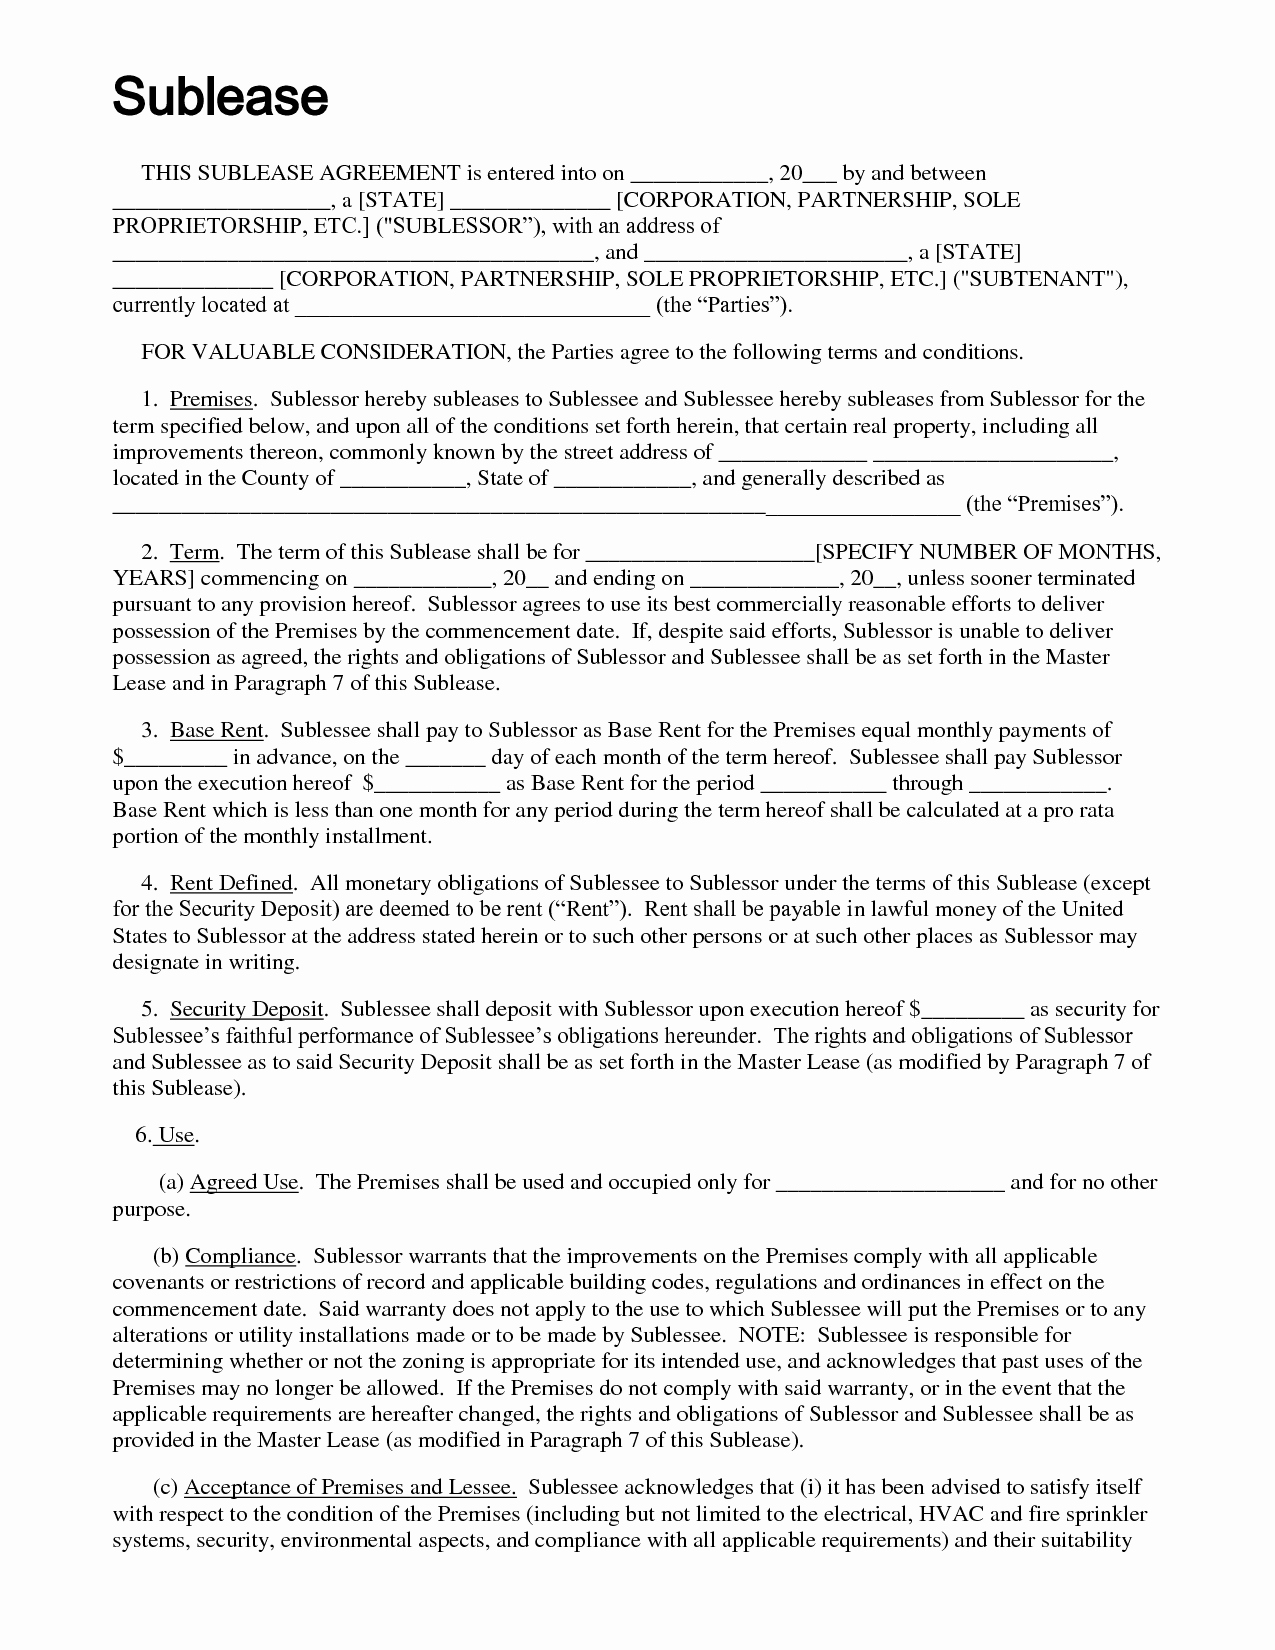 Sublease Agreement Template California Inspirational Sublease Agreement Template